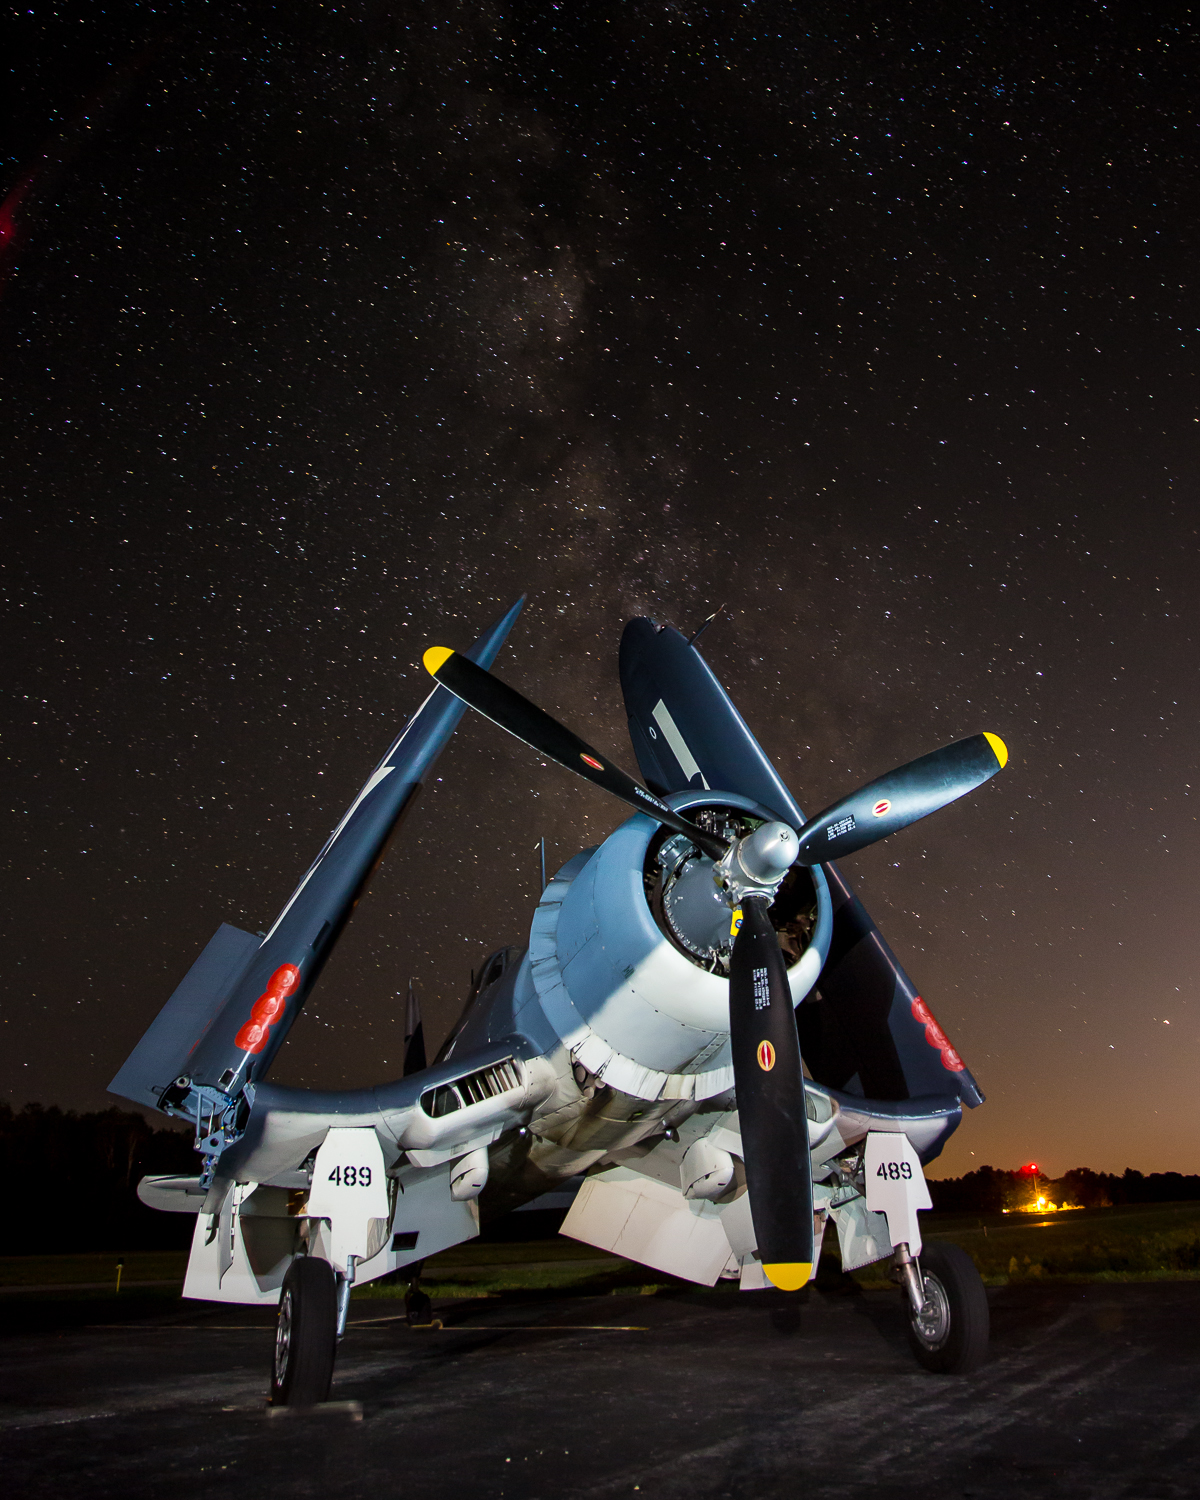 A WWII Corsair, light painted against the Milky Way.